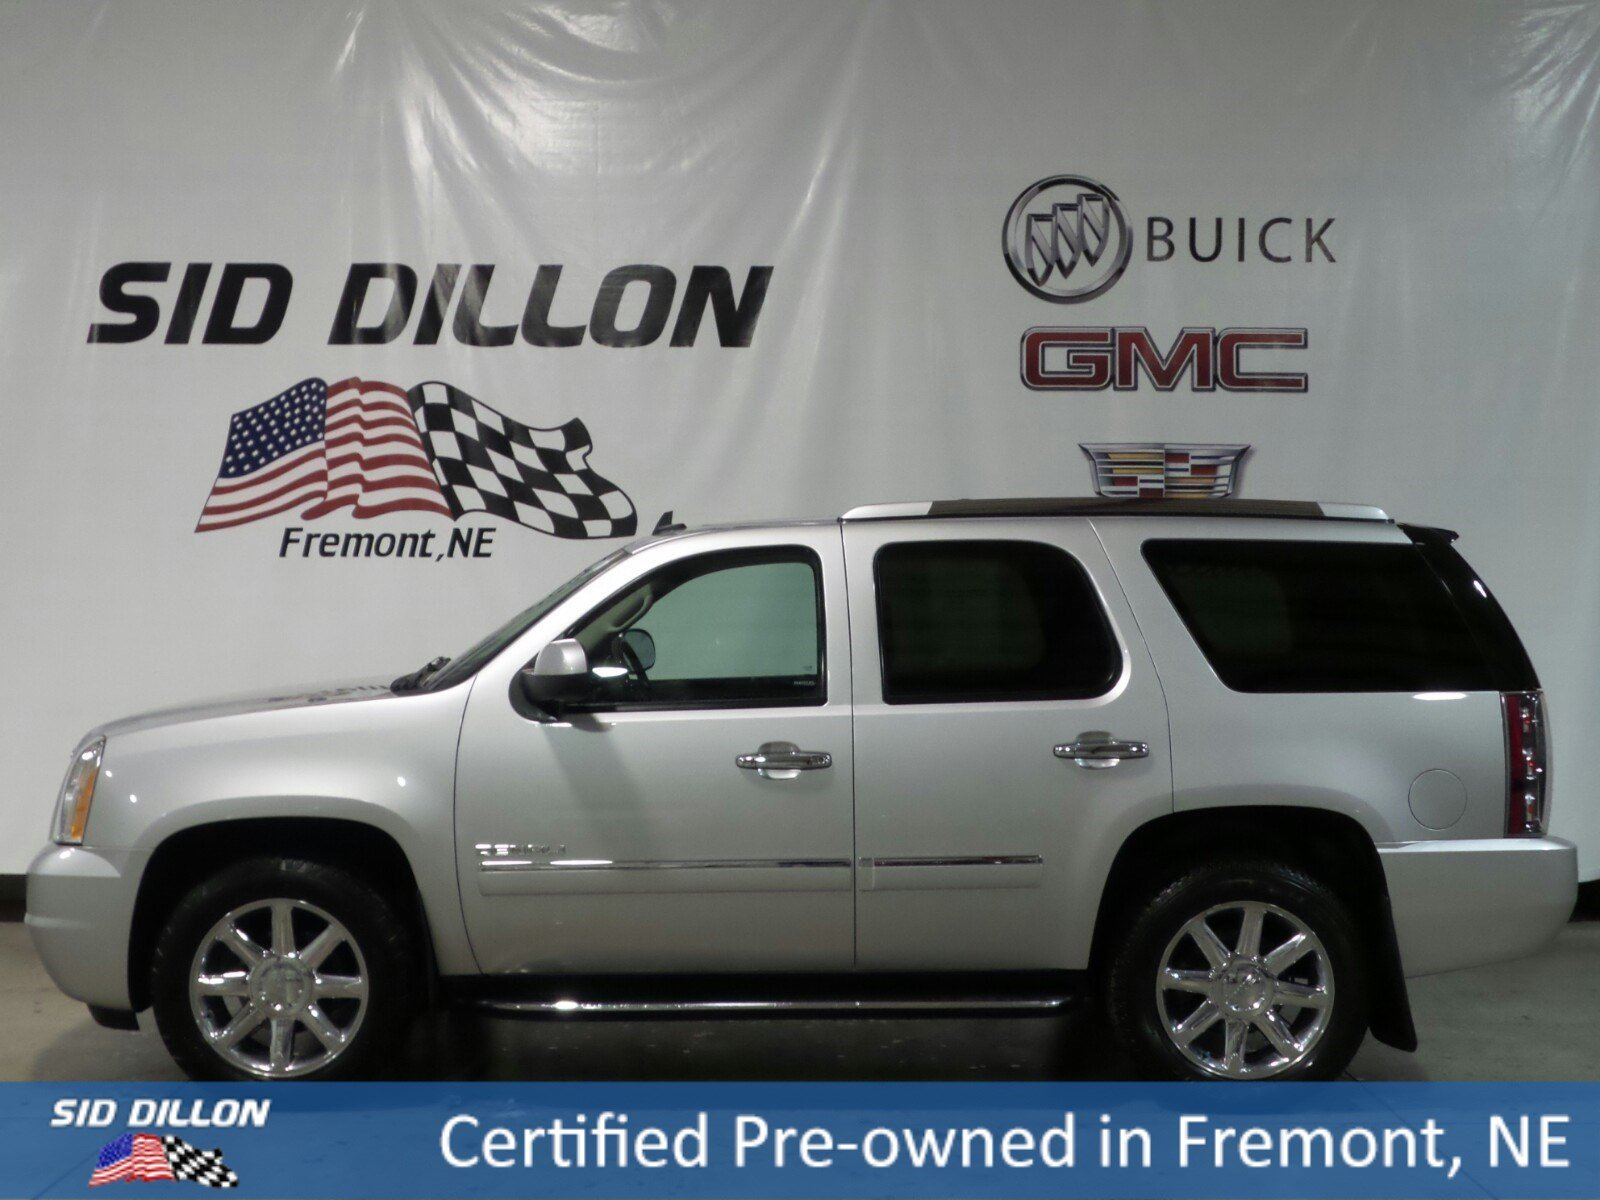 Certified Pre-Owned 2013 GMC Yukon Denali